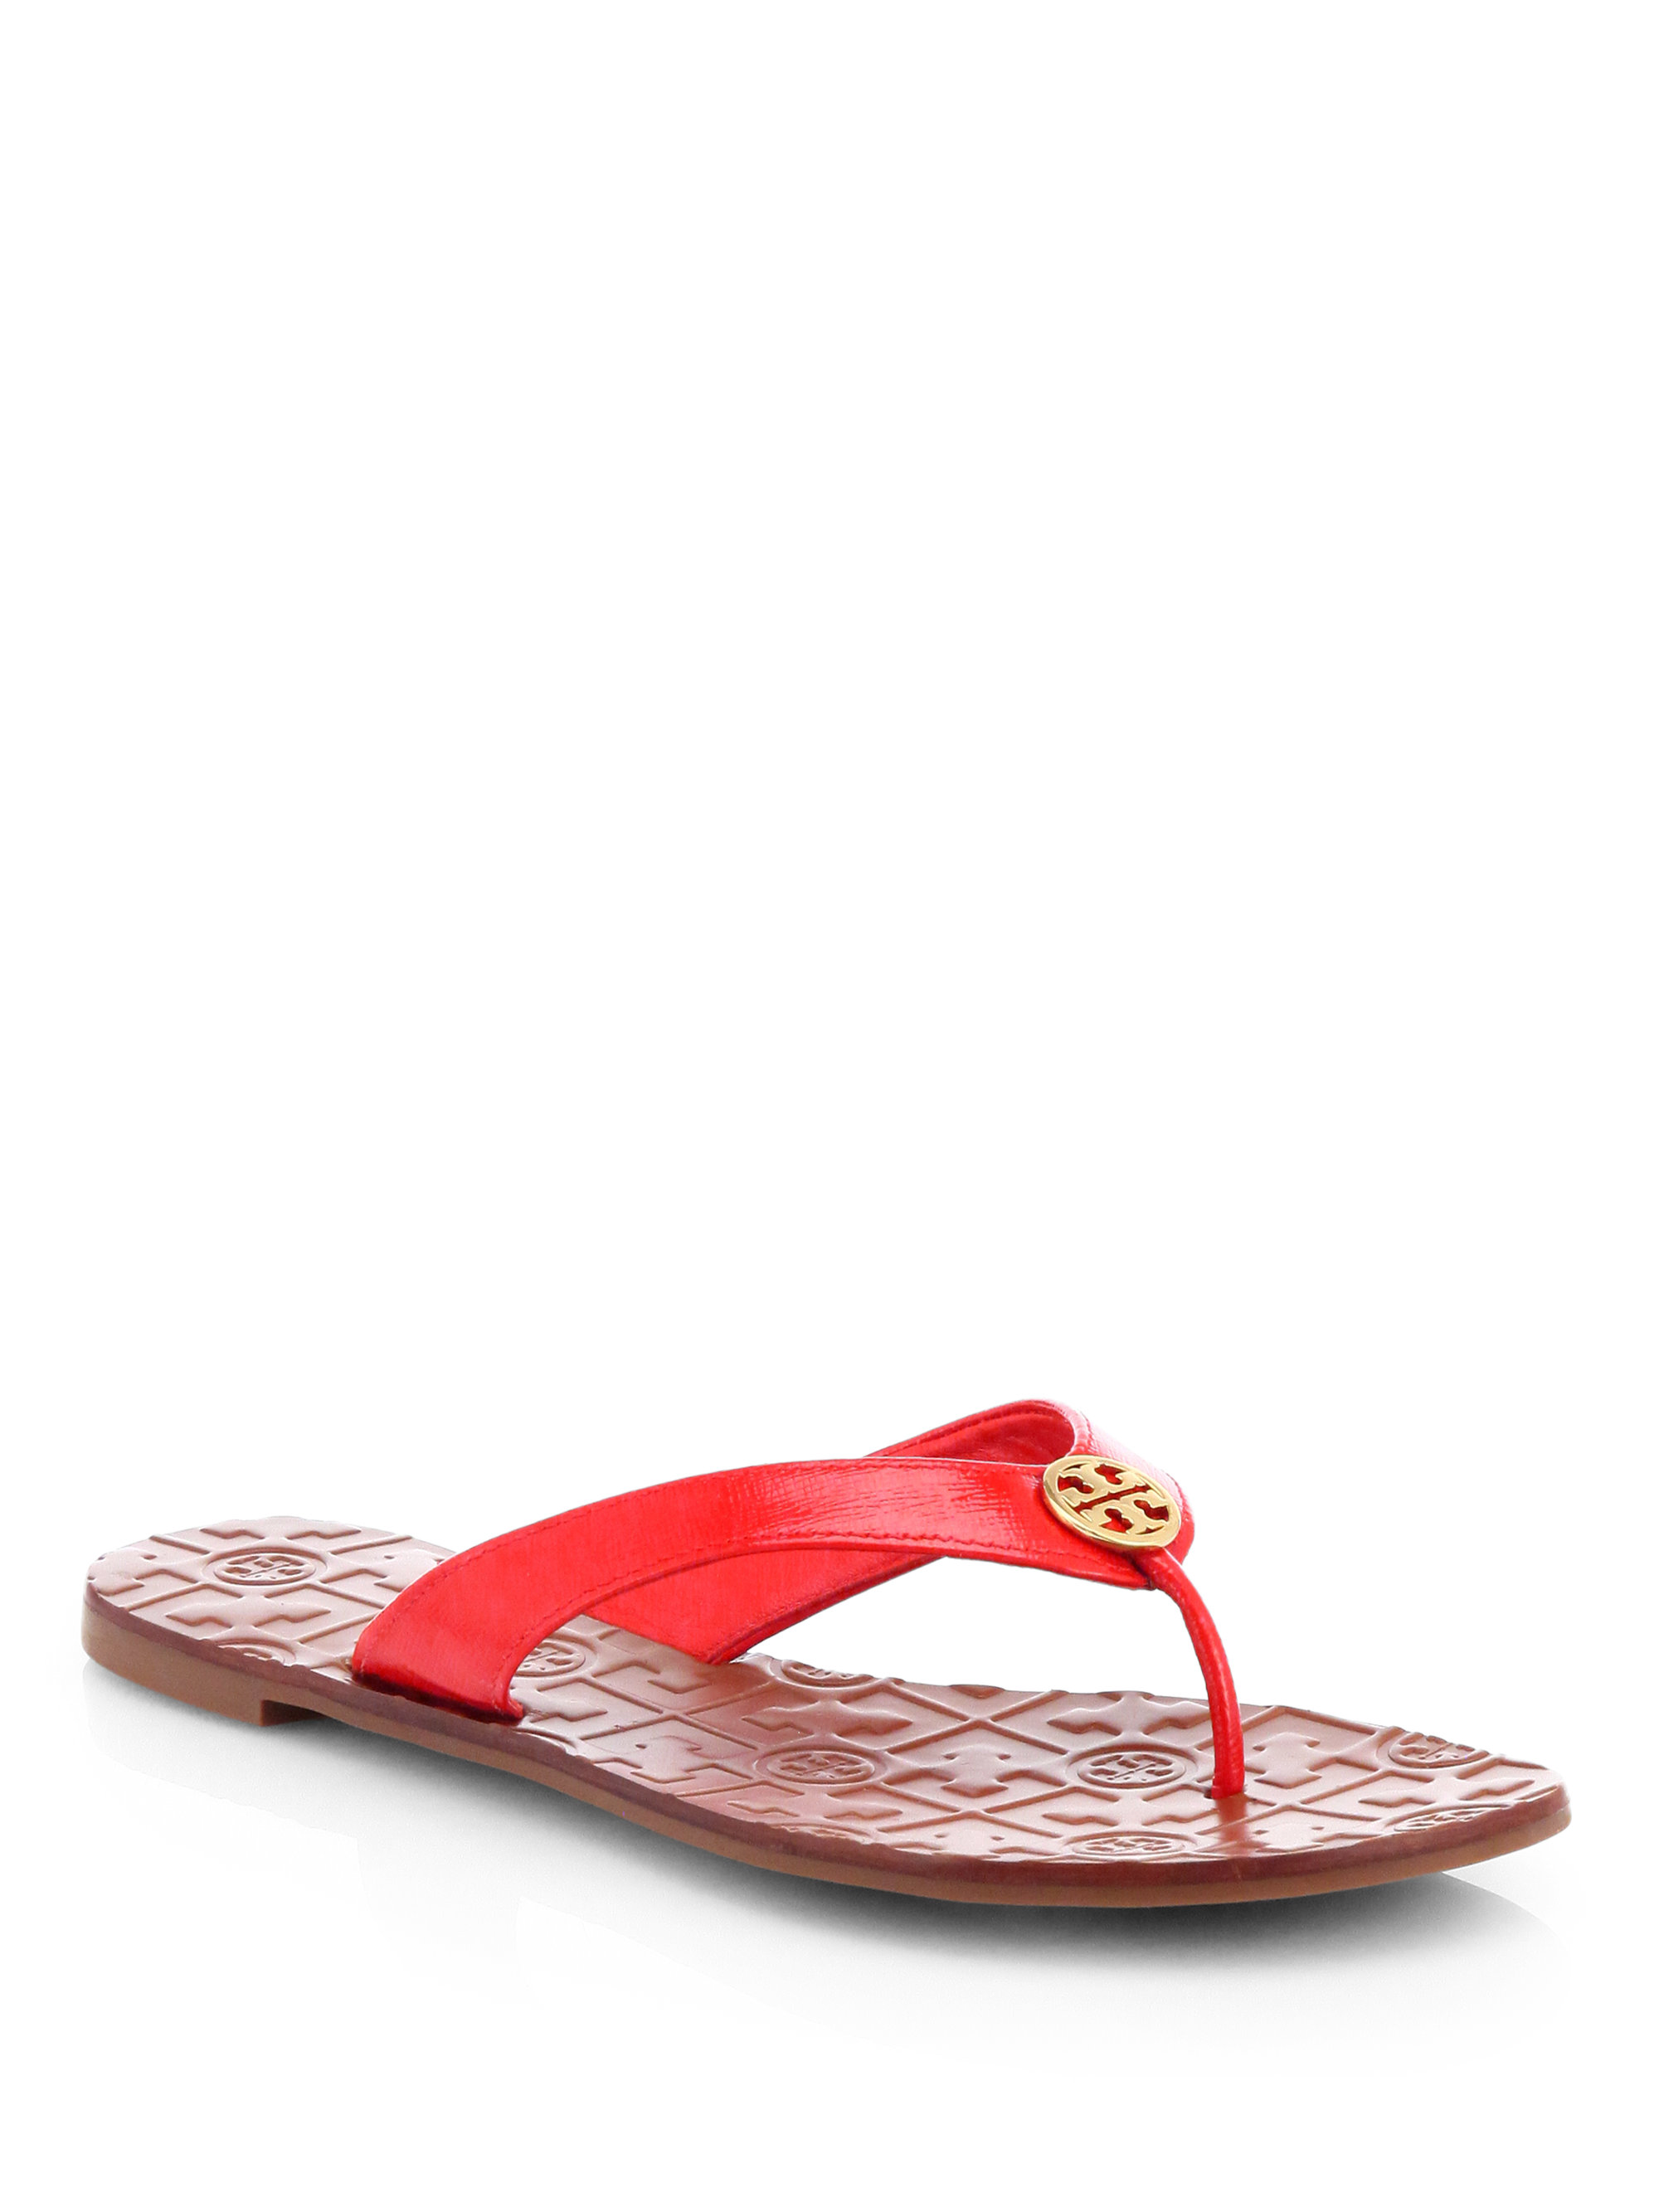 28d02a9e1465 ... metallic 2df96 365c9  order tory burch thora 2 patent leather thong  sandals in red lyst 00ab9 83ed1